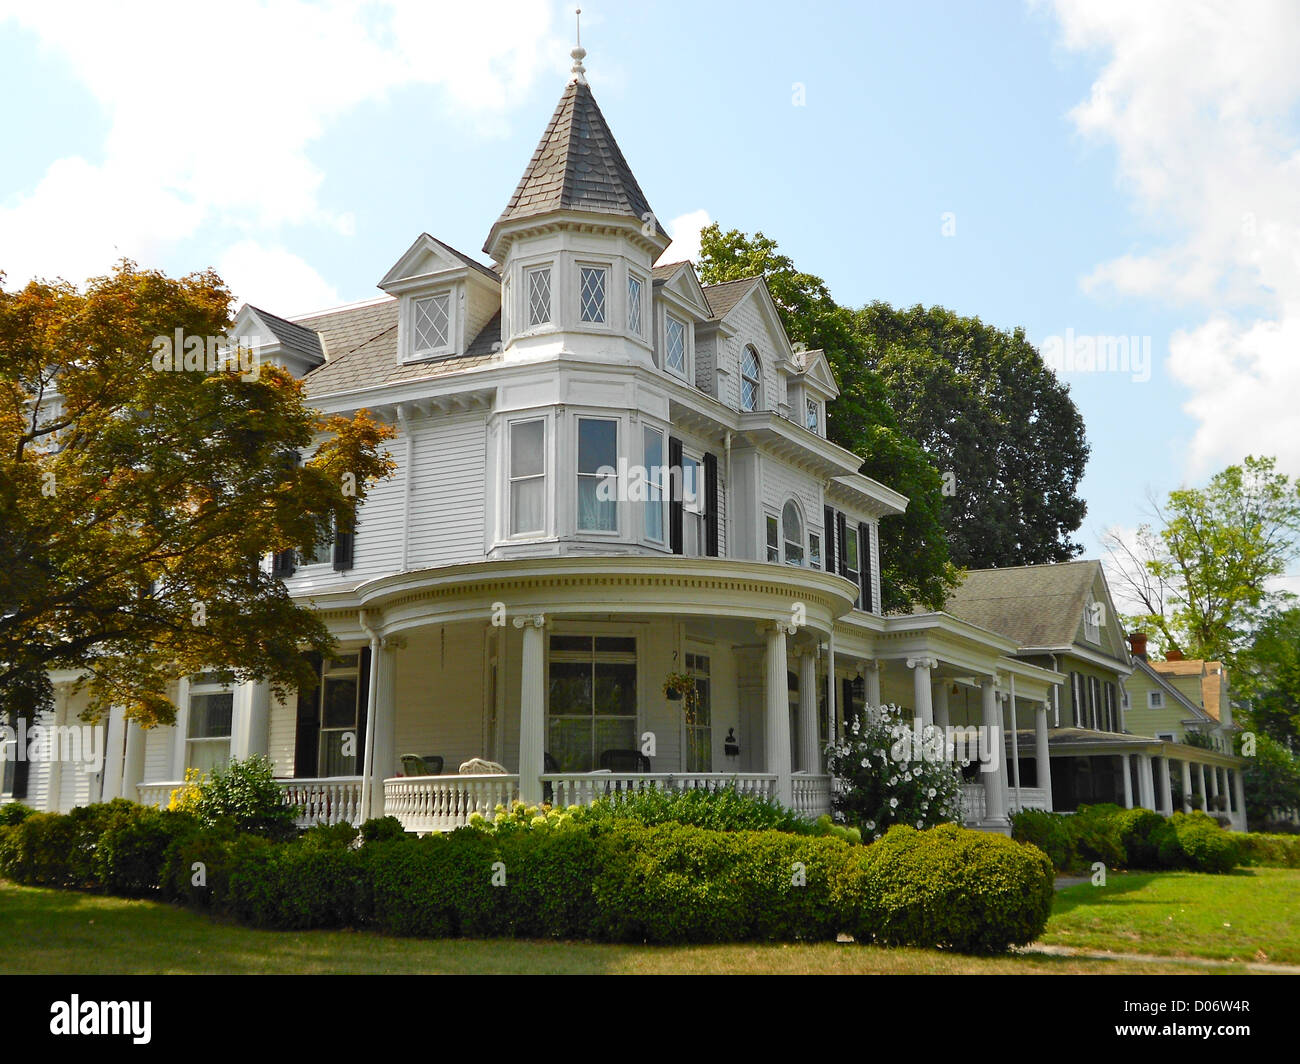 Draper House on the NRHP since April 22, 1982. 200 Lakeview Ave., Milford, Delaware. In Sussex County part of Milford - Stock Image